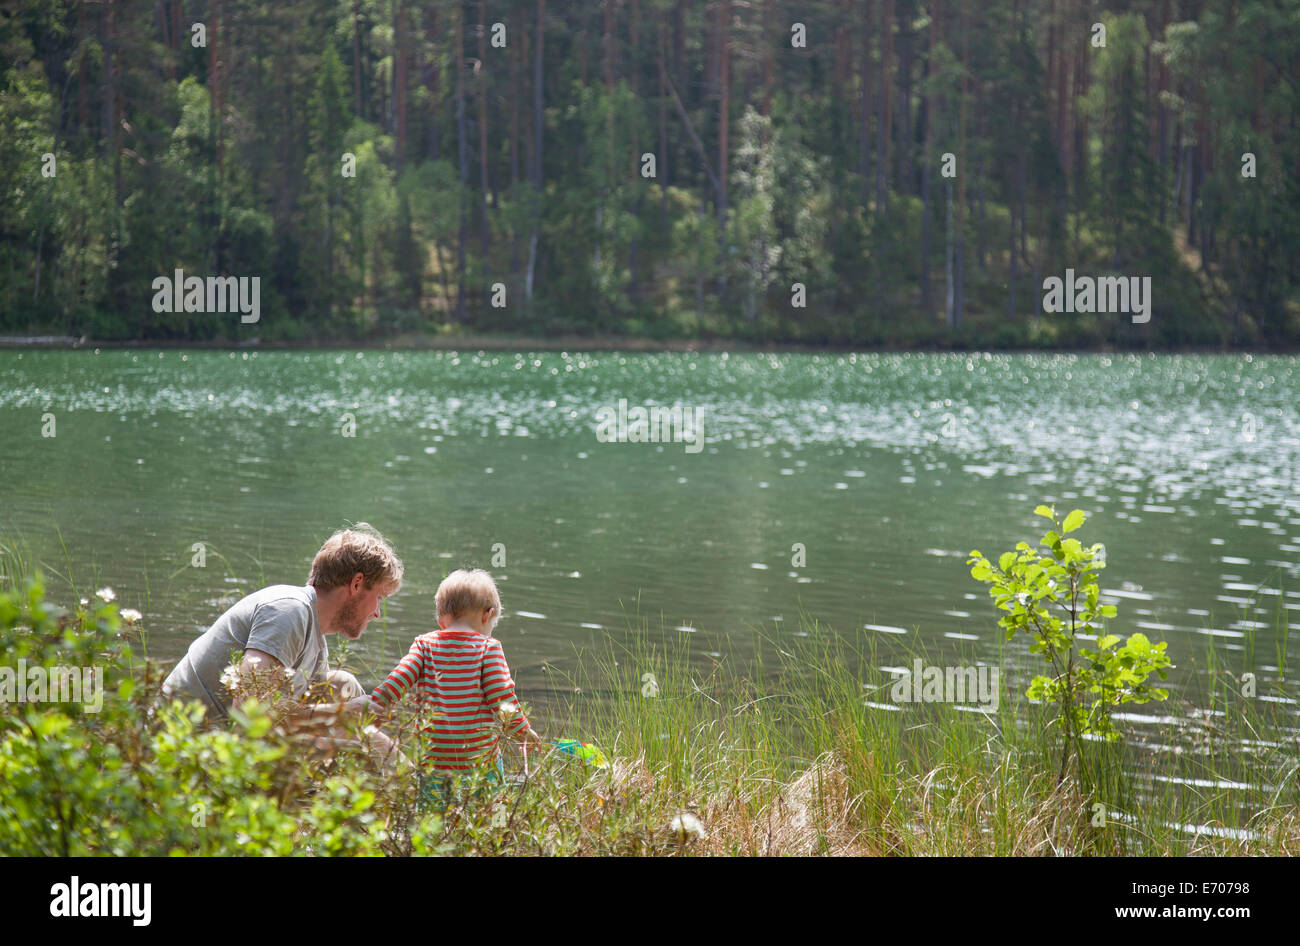 Father and son looking down into lake, Somerniemi, Finland - Stock Image